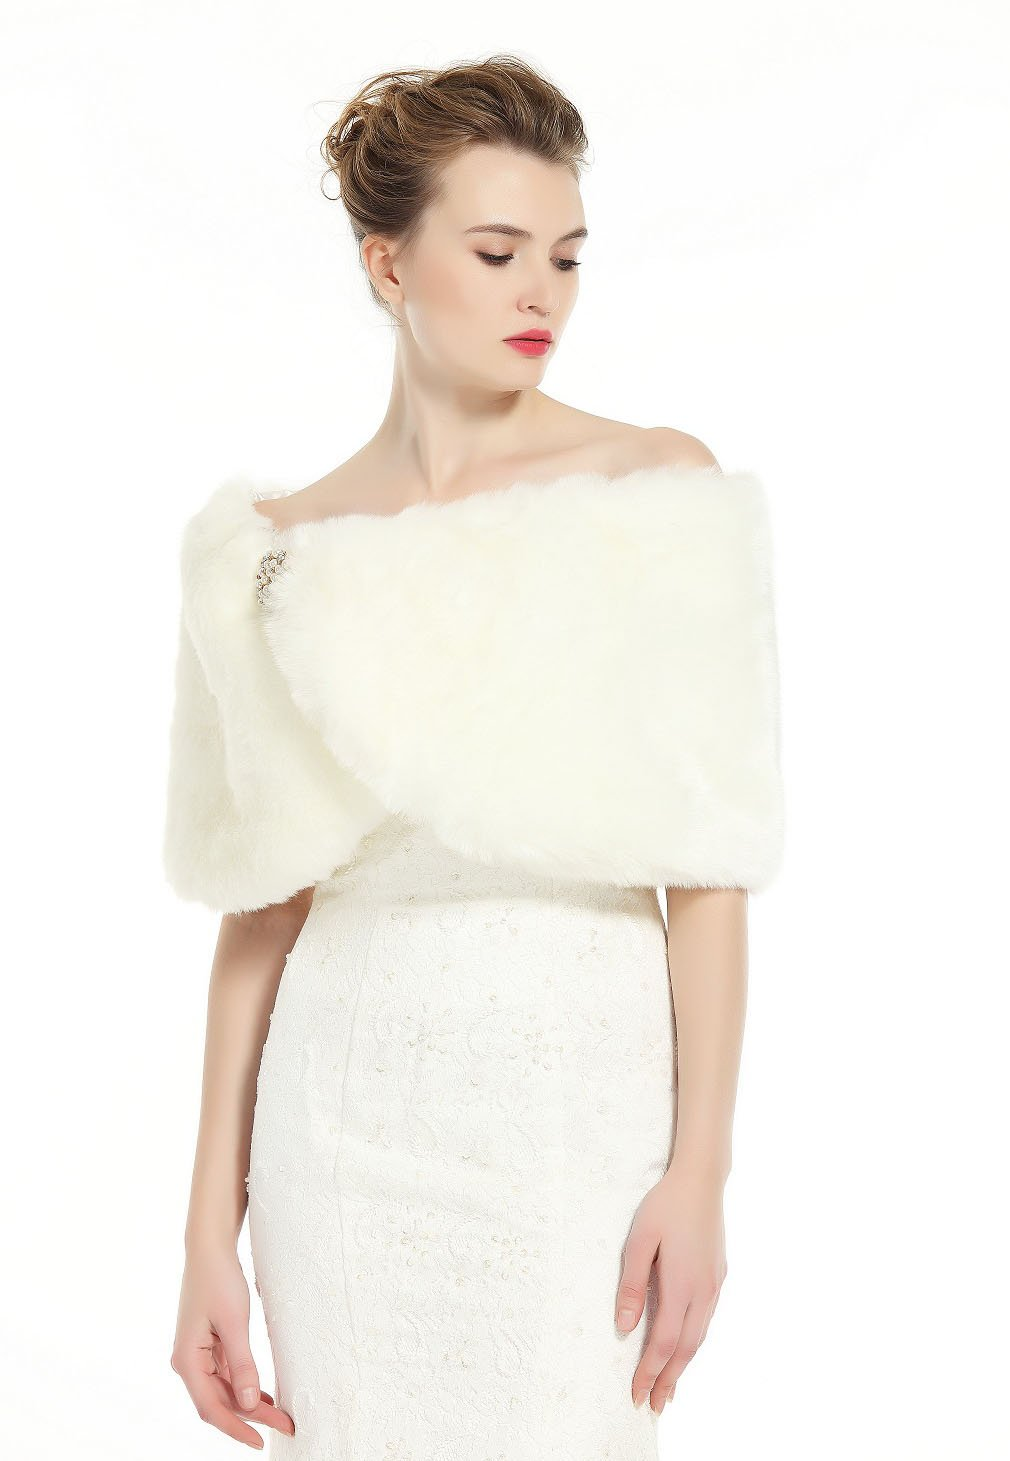 Faux Fur Wrap Shawl Women's Shrug Bridal Stole for Winter Wedding Party Free Brooch Ivory by BEAUTELICATE (Image #3)